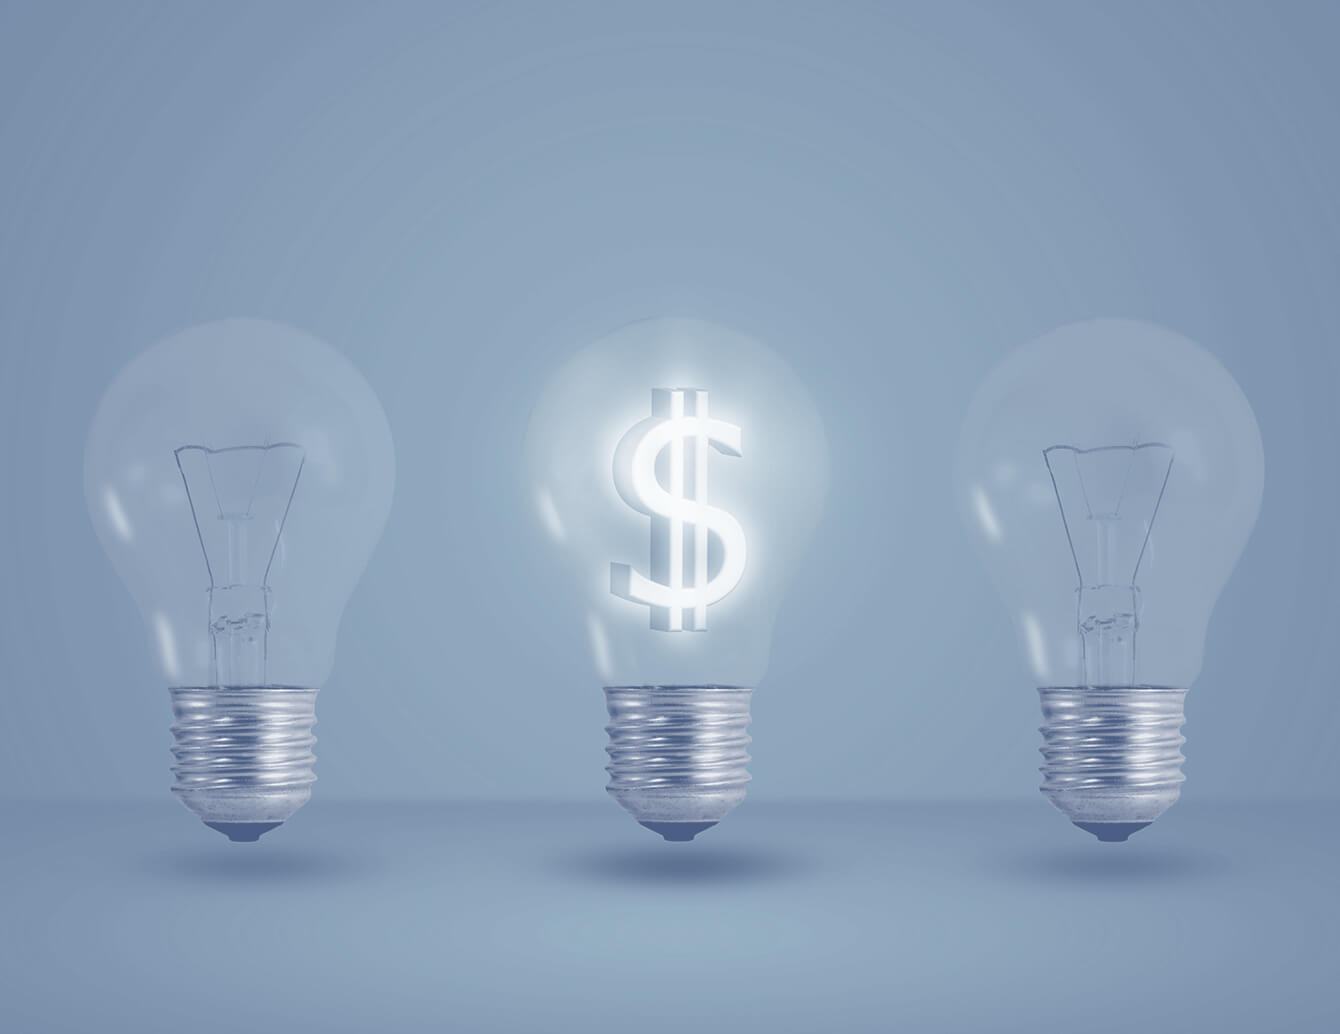 Lightbulb with glowing dollar sign filament.